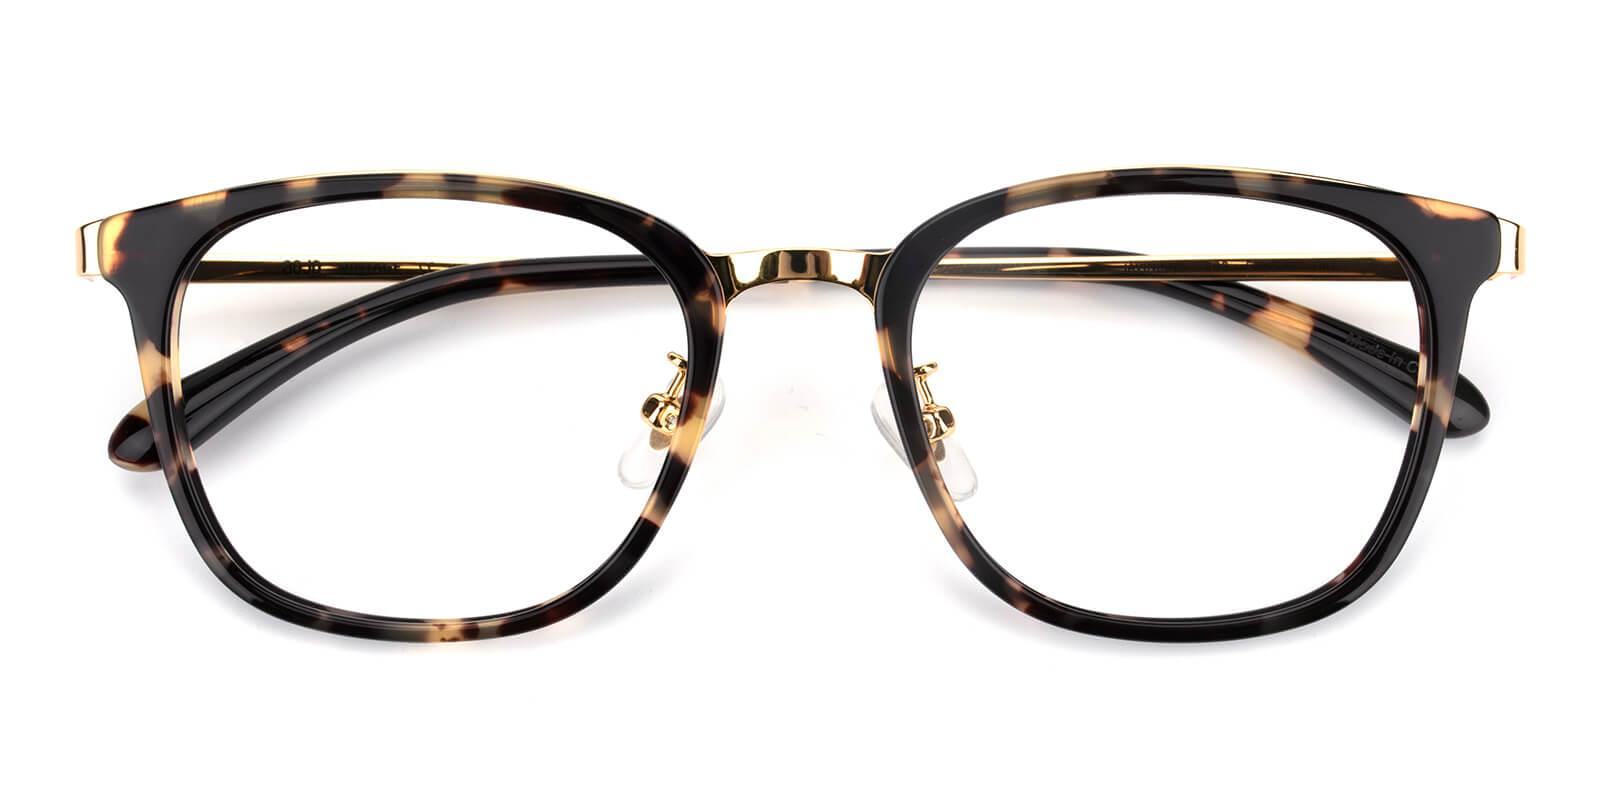 Keronito-Leopard-Square-Metal-Eyeglasses-detail